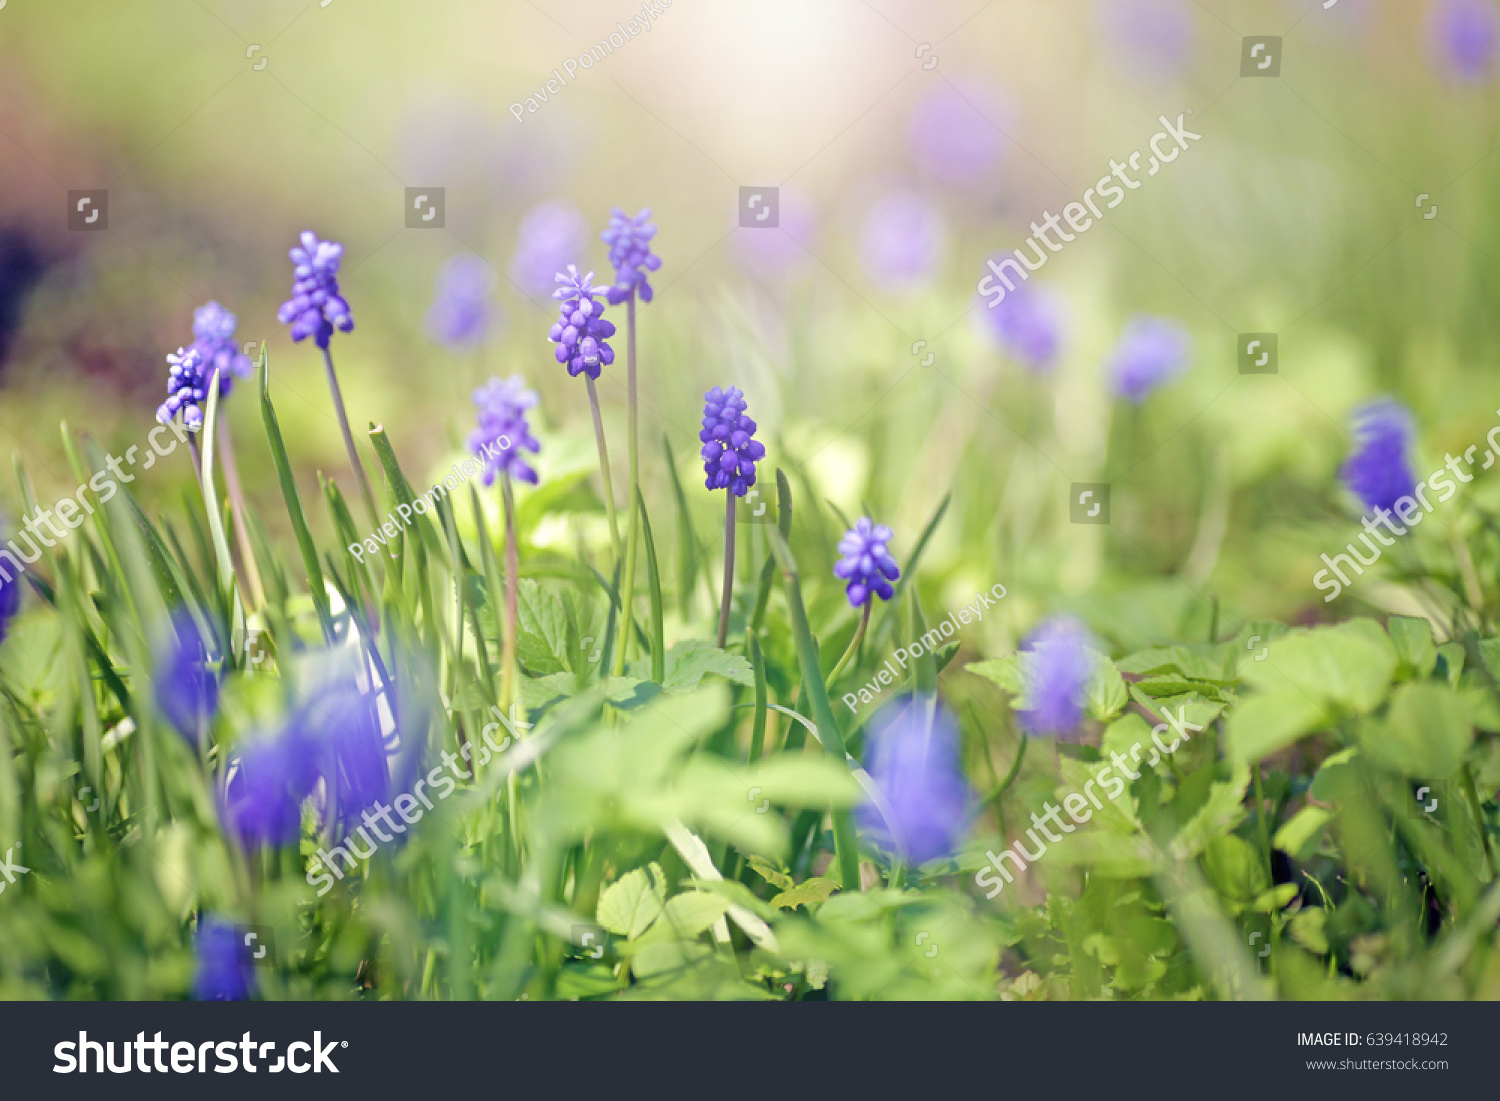 First Spring Flowers Stock Photo Safe To Use 639418942 Shutterstock